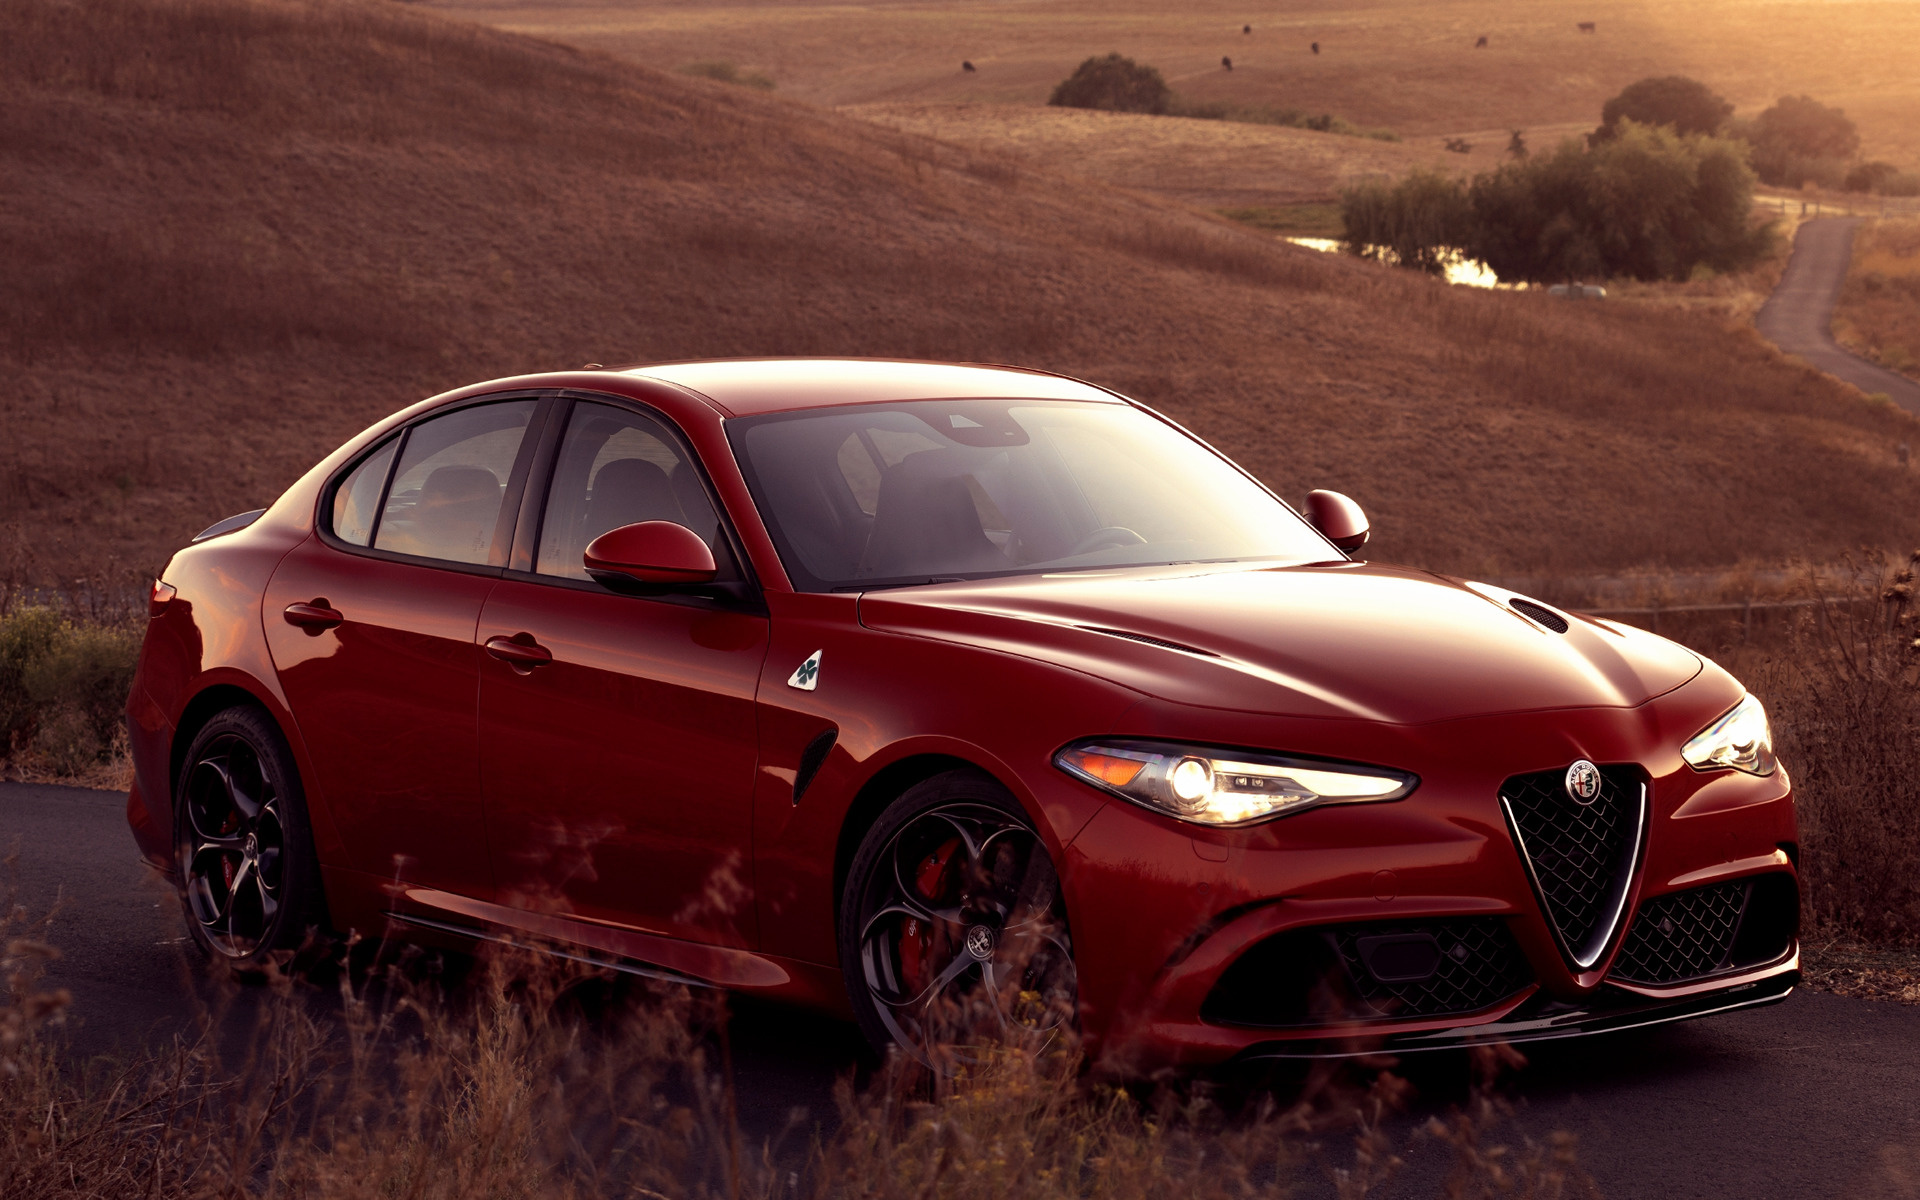 Mercedes Smart Car >> 2017 Alfa Romeo Giulia Quadrifoglio (US) - Wallpapers and ...